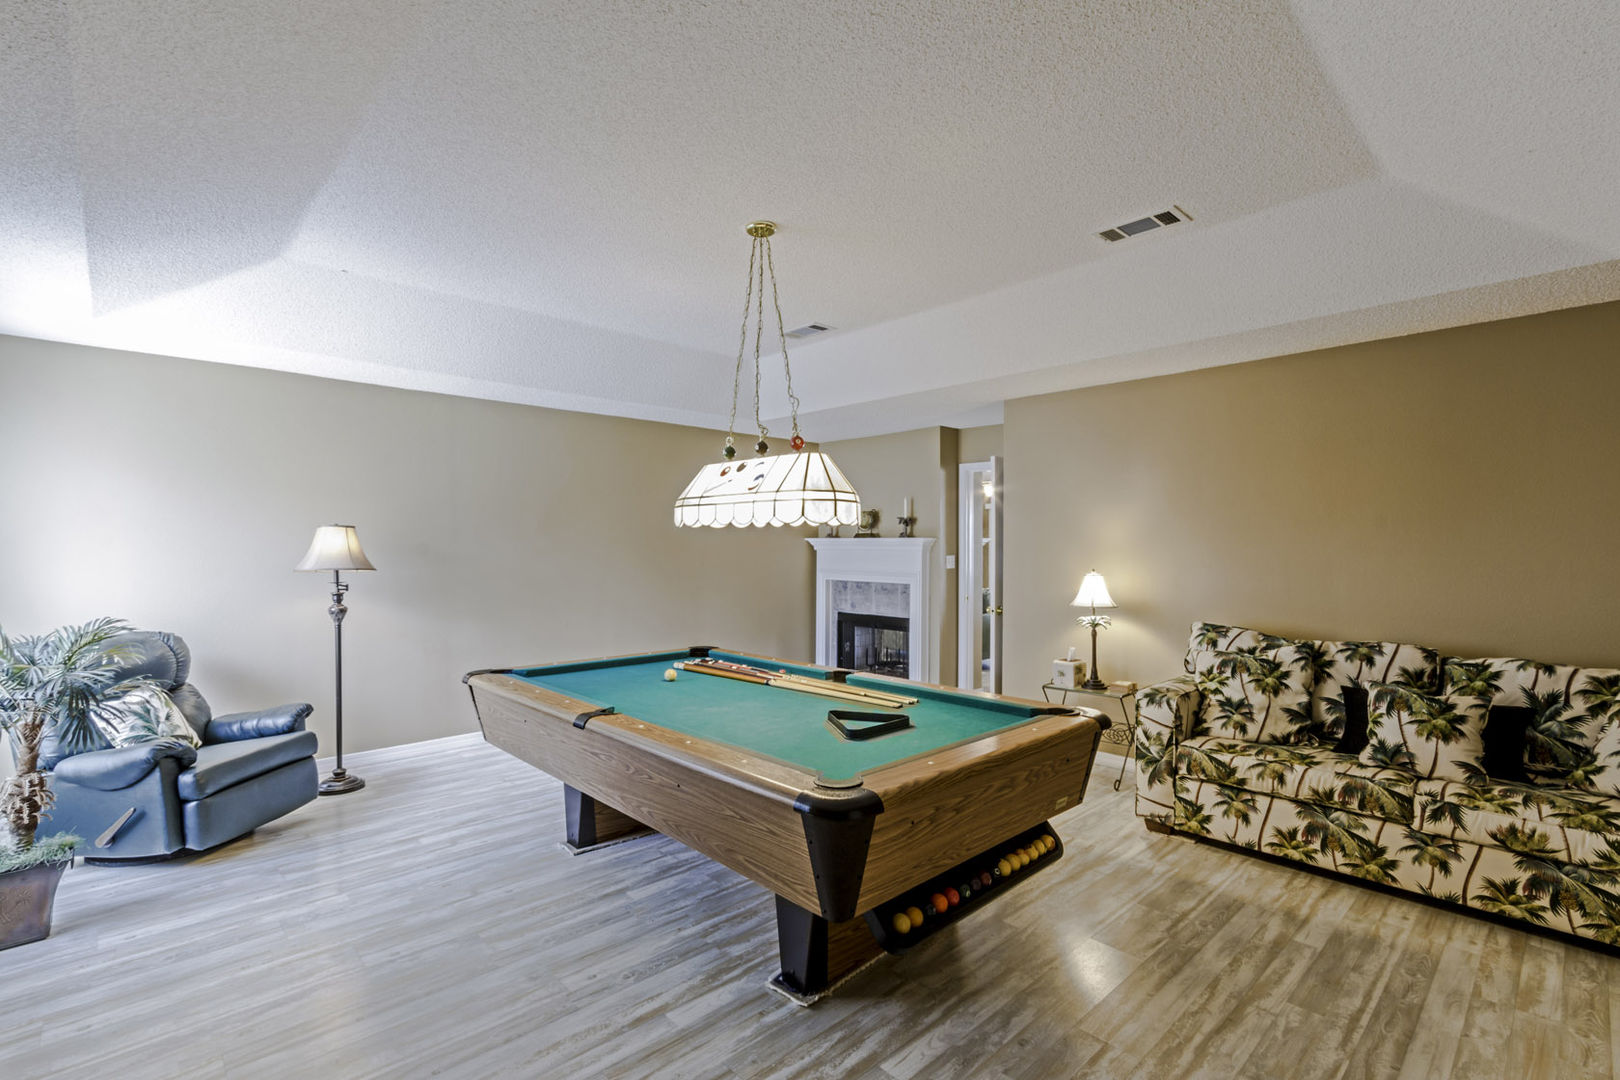 Gameroom with pool table and seating.